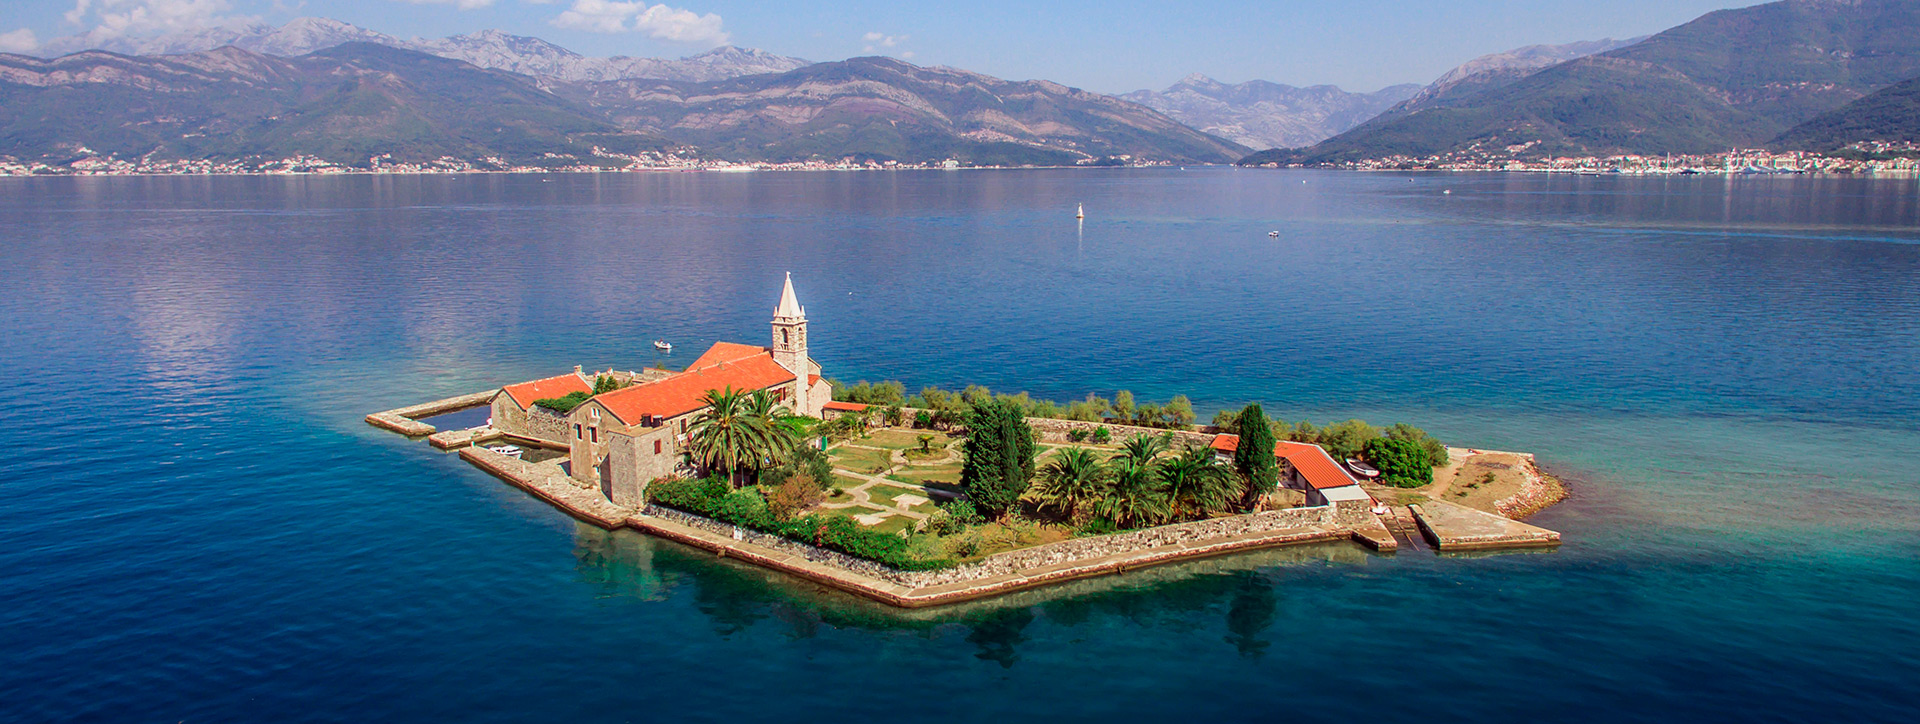 Island of Our Lady of Mercy from a height, Tivat Bay, Montenegro - Adriatic sailing routes of SimpleSai